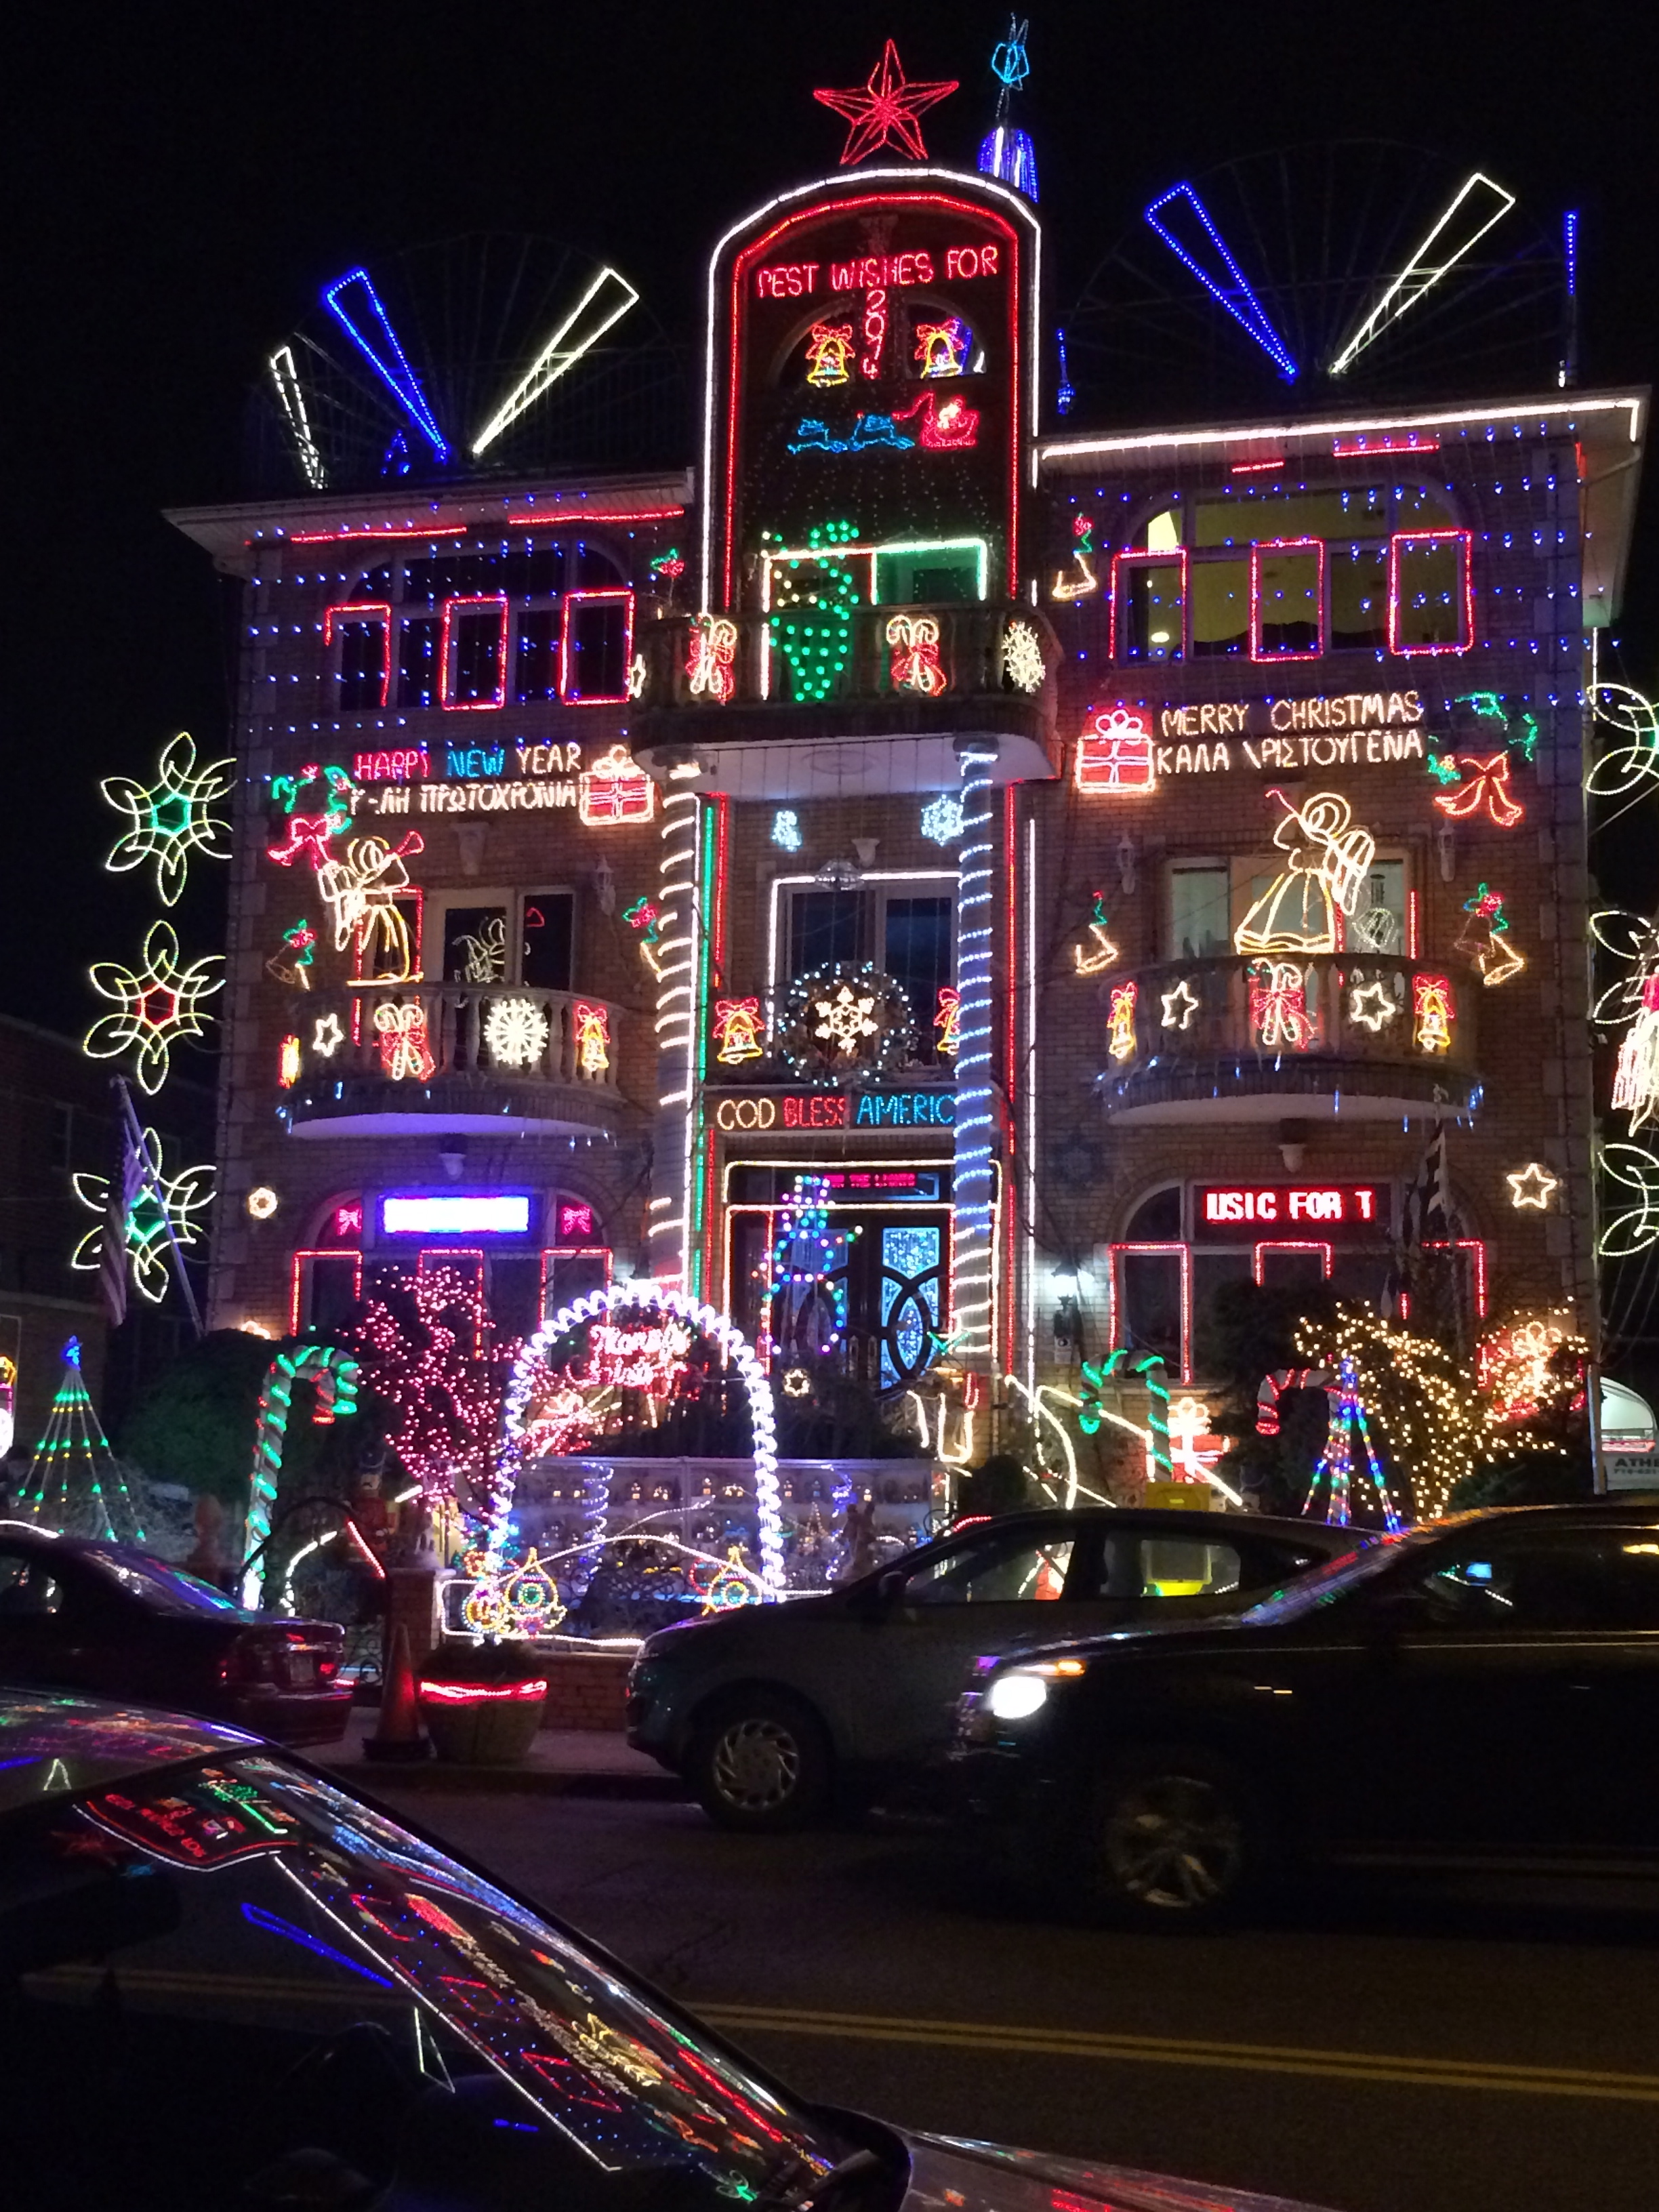 one of them includes the dyker heights lights dyker heights a neighborhood southern brooklyn is known for its beautiful christmas light presentations - Christmas Lights In Brooklyn